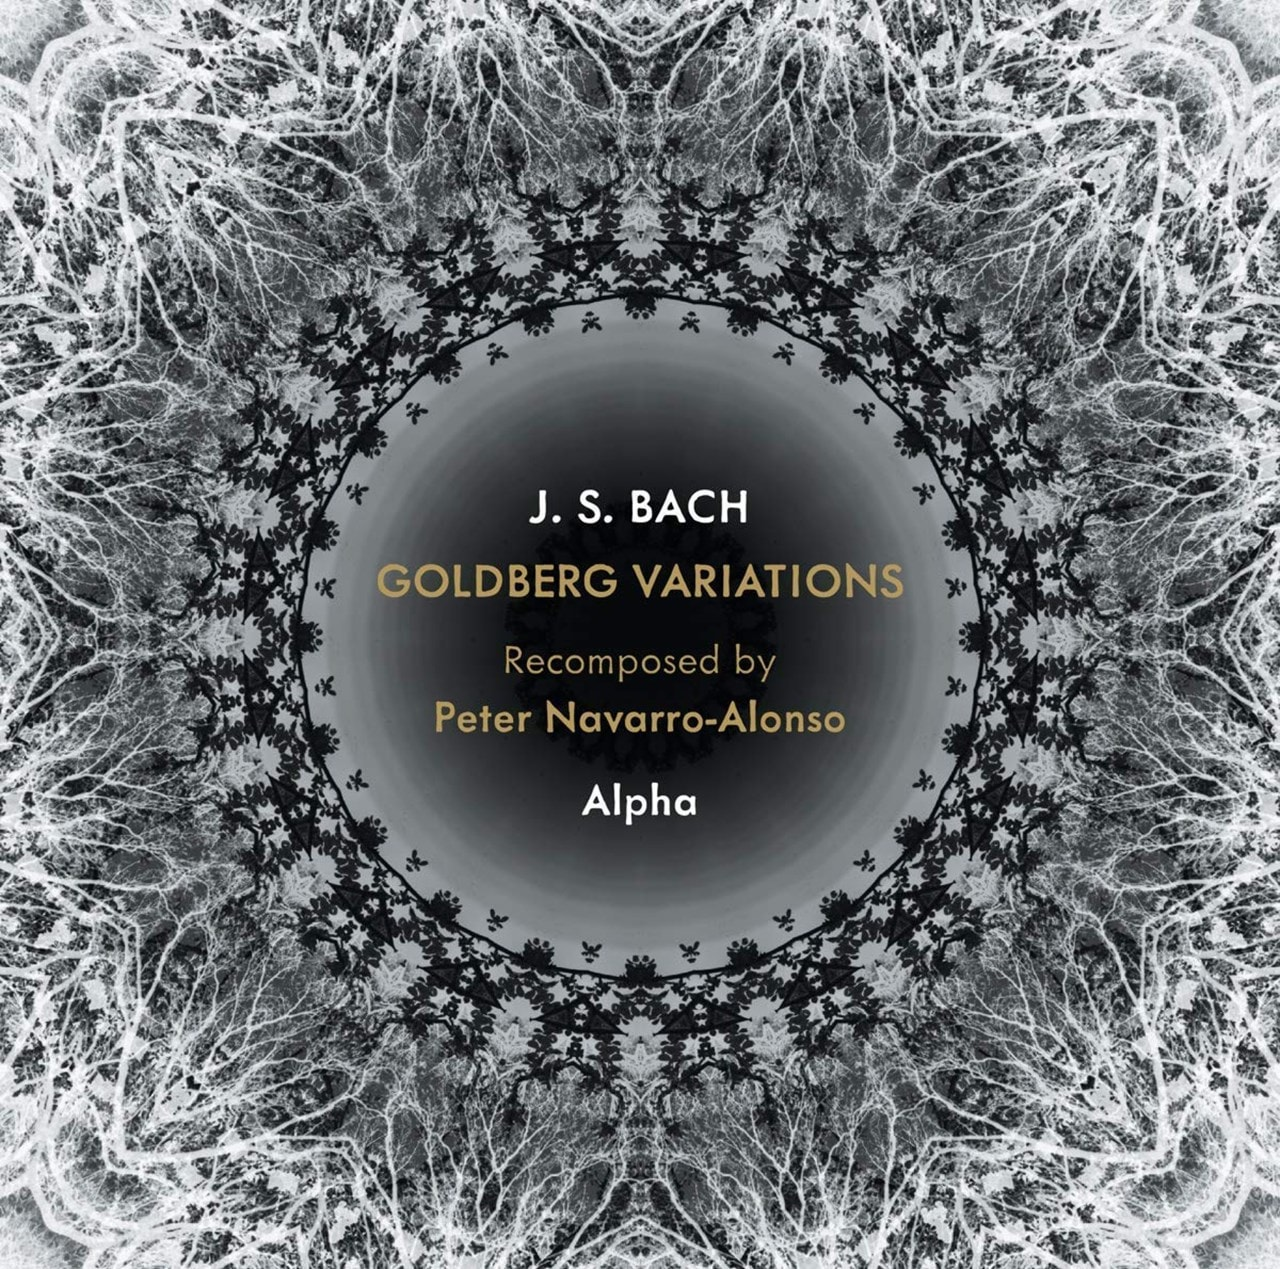 J.S. Bach: Goldberg Variations Recomposed By Peter Navarro-Alonso - 1